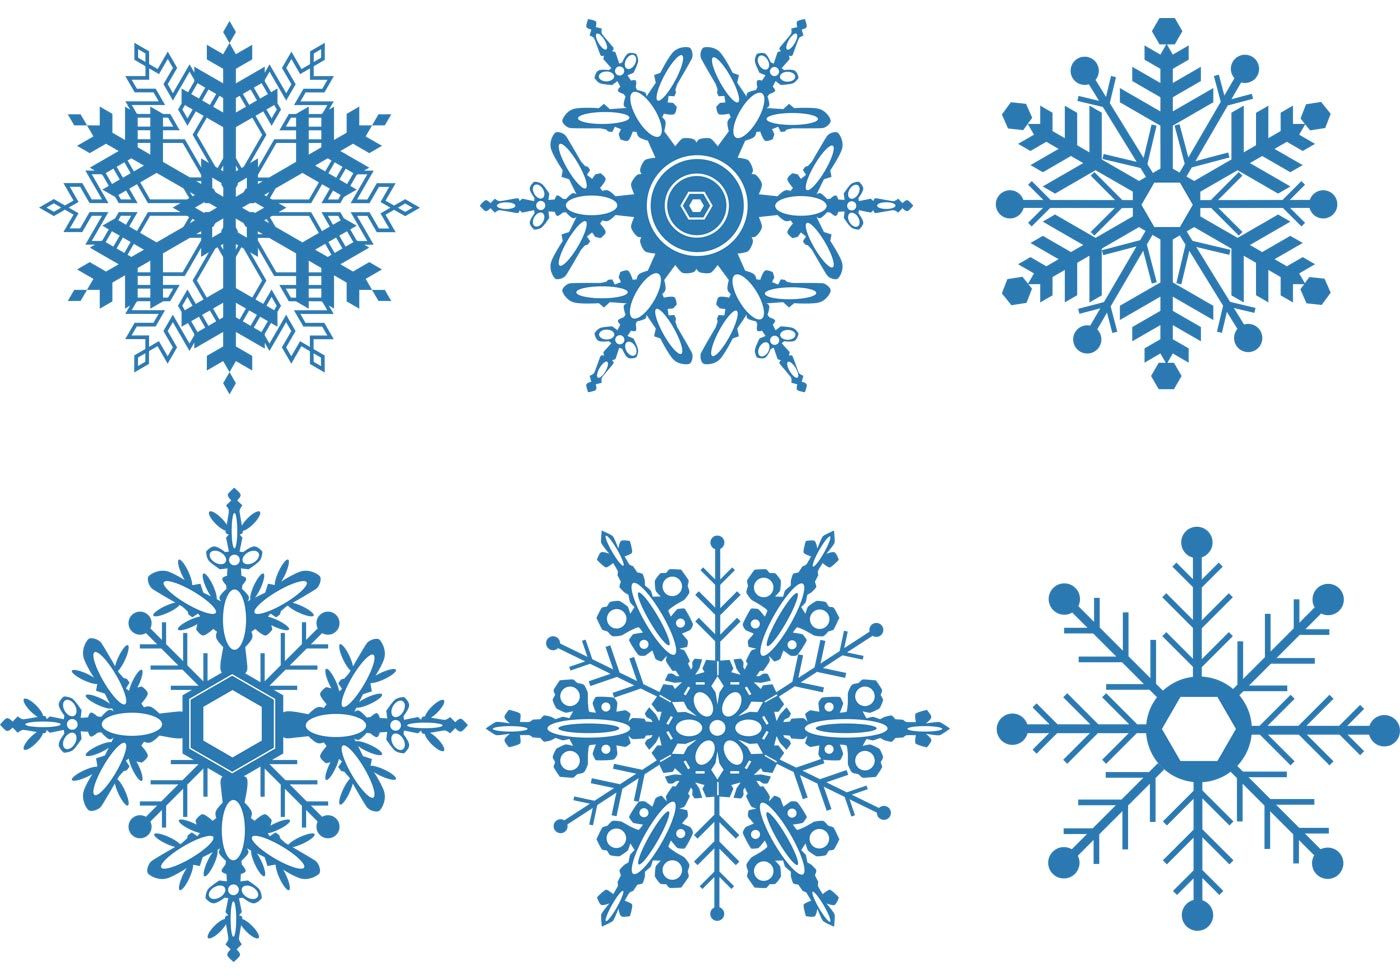 Snowflake Vector Set - Download Free Vector Art, Stock Graphics ...